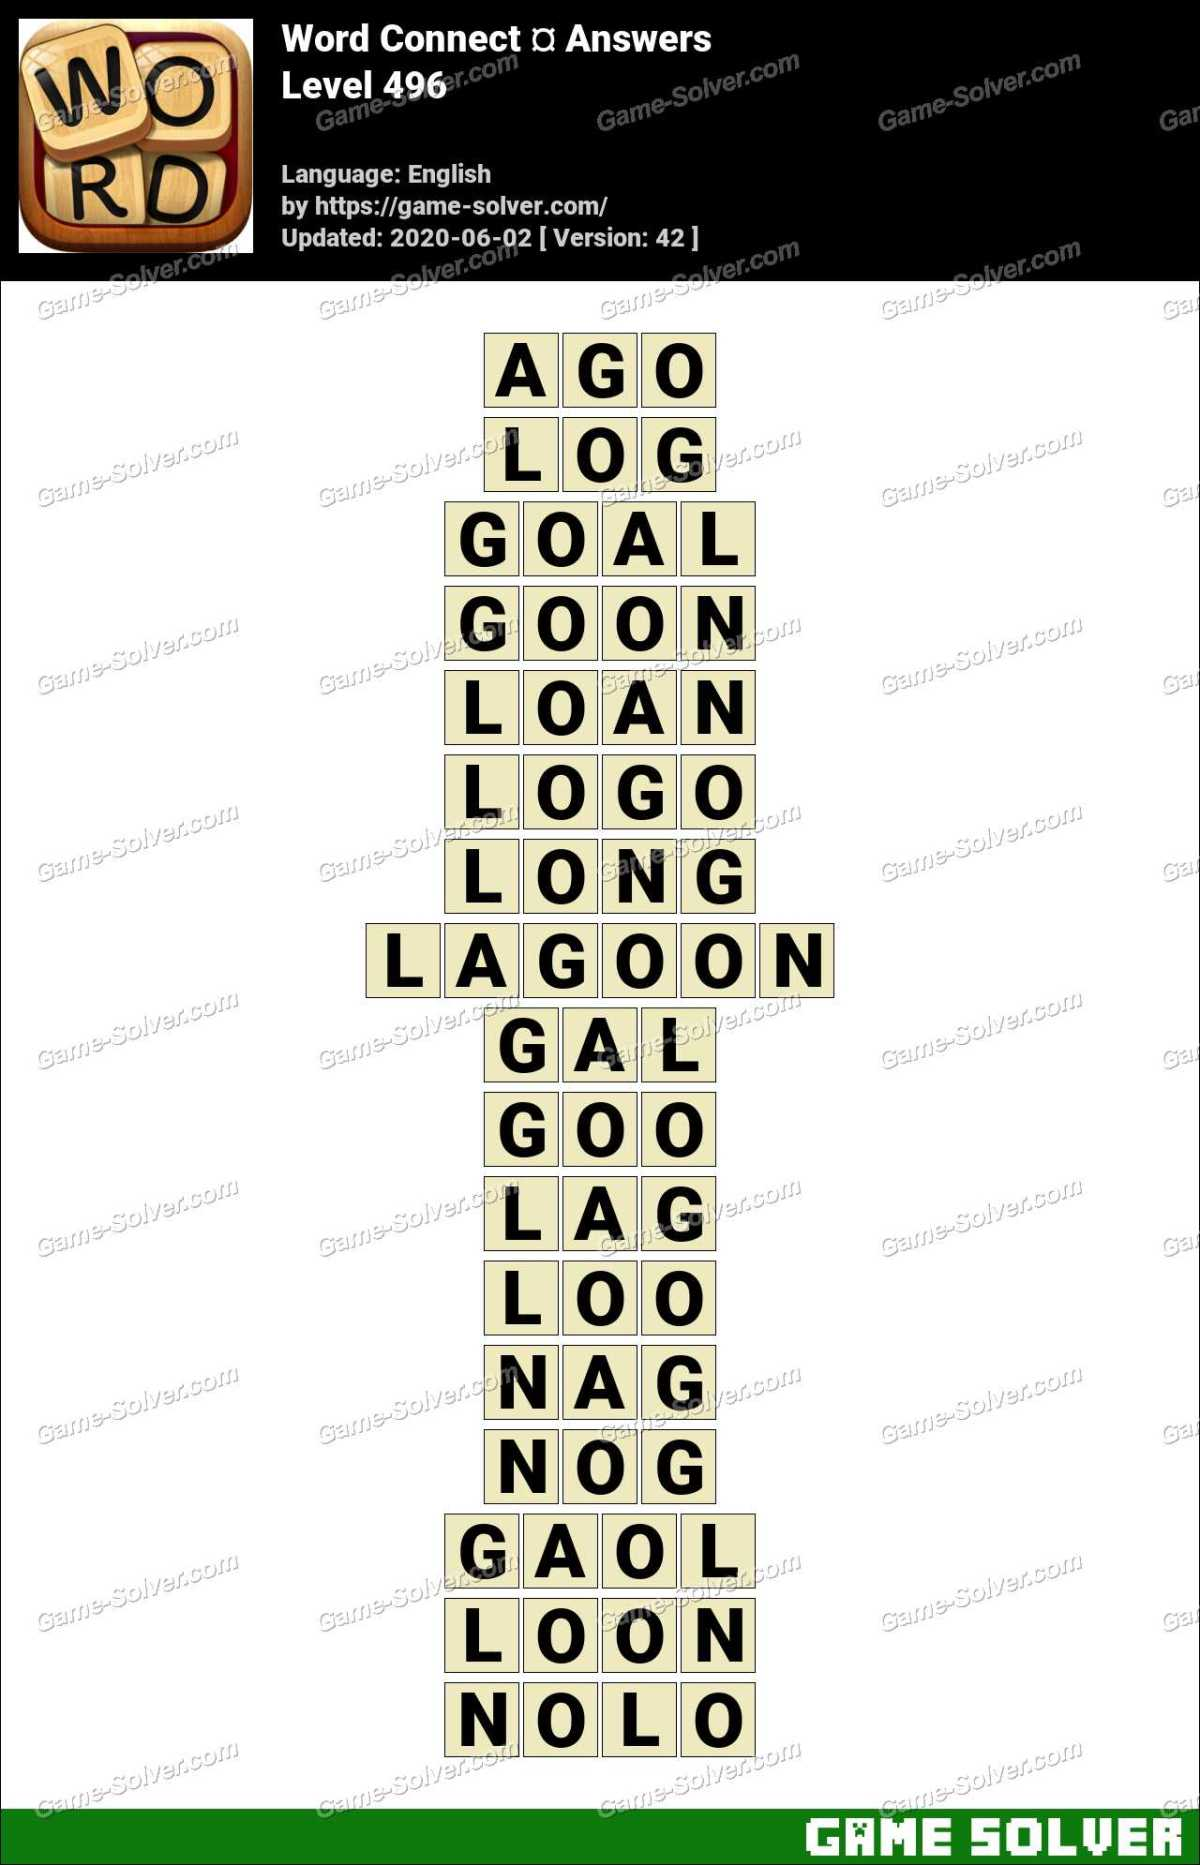 Word Connect Level 496 Answers